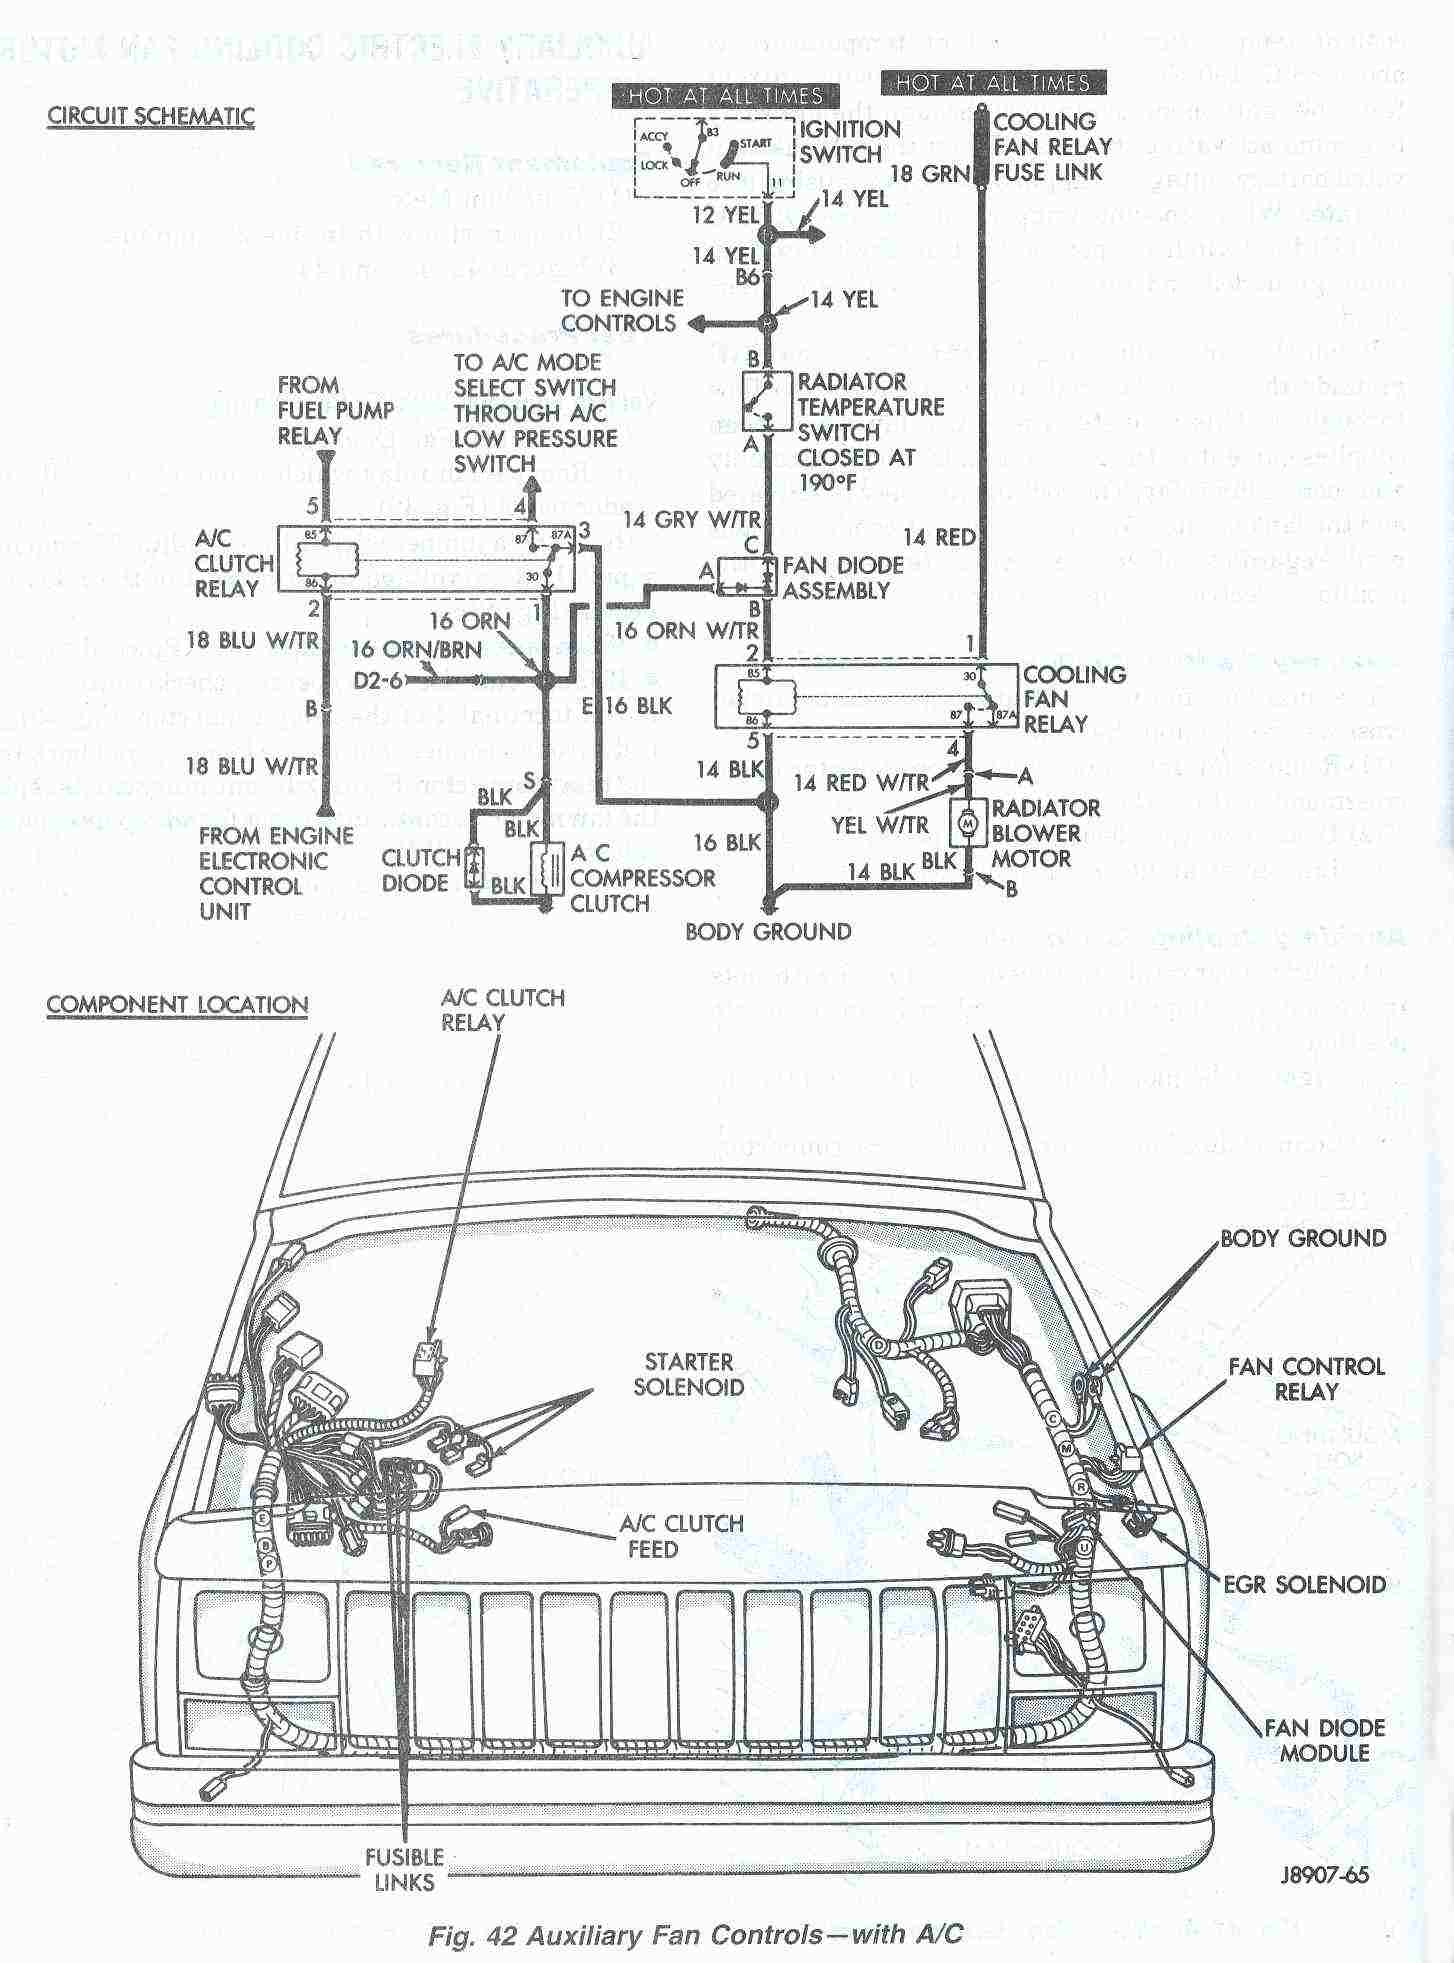 Auxiliary_Fan_Schematic_Fig_42 jeep cherokee cooling system electric cooling fan 2000 jeep cherokee wiring diagram at virtualis.co